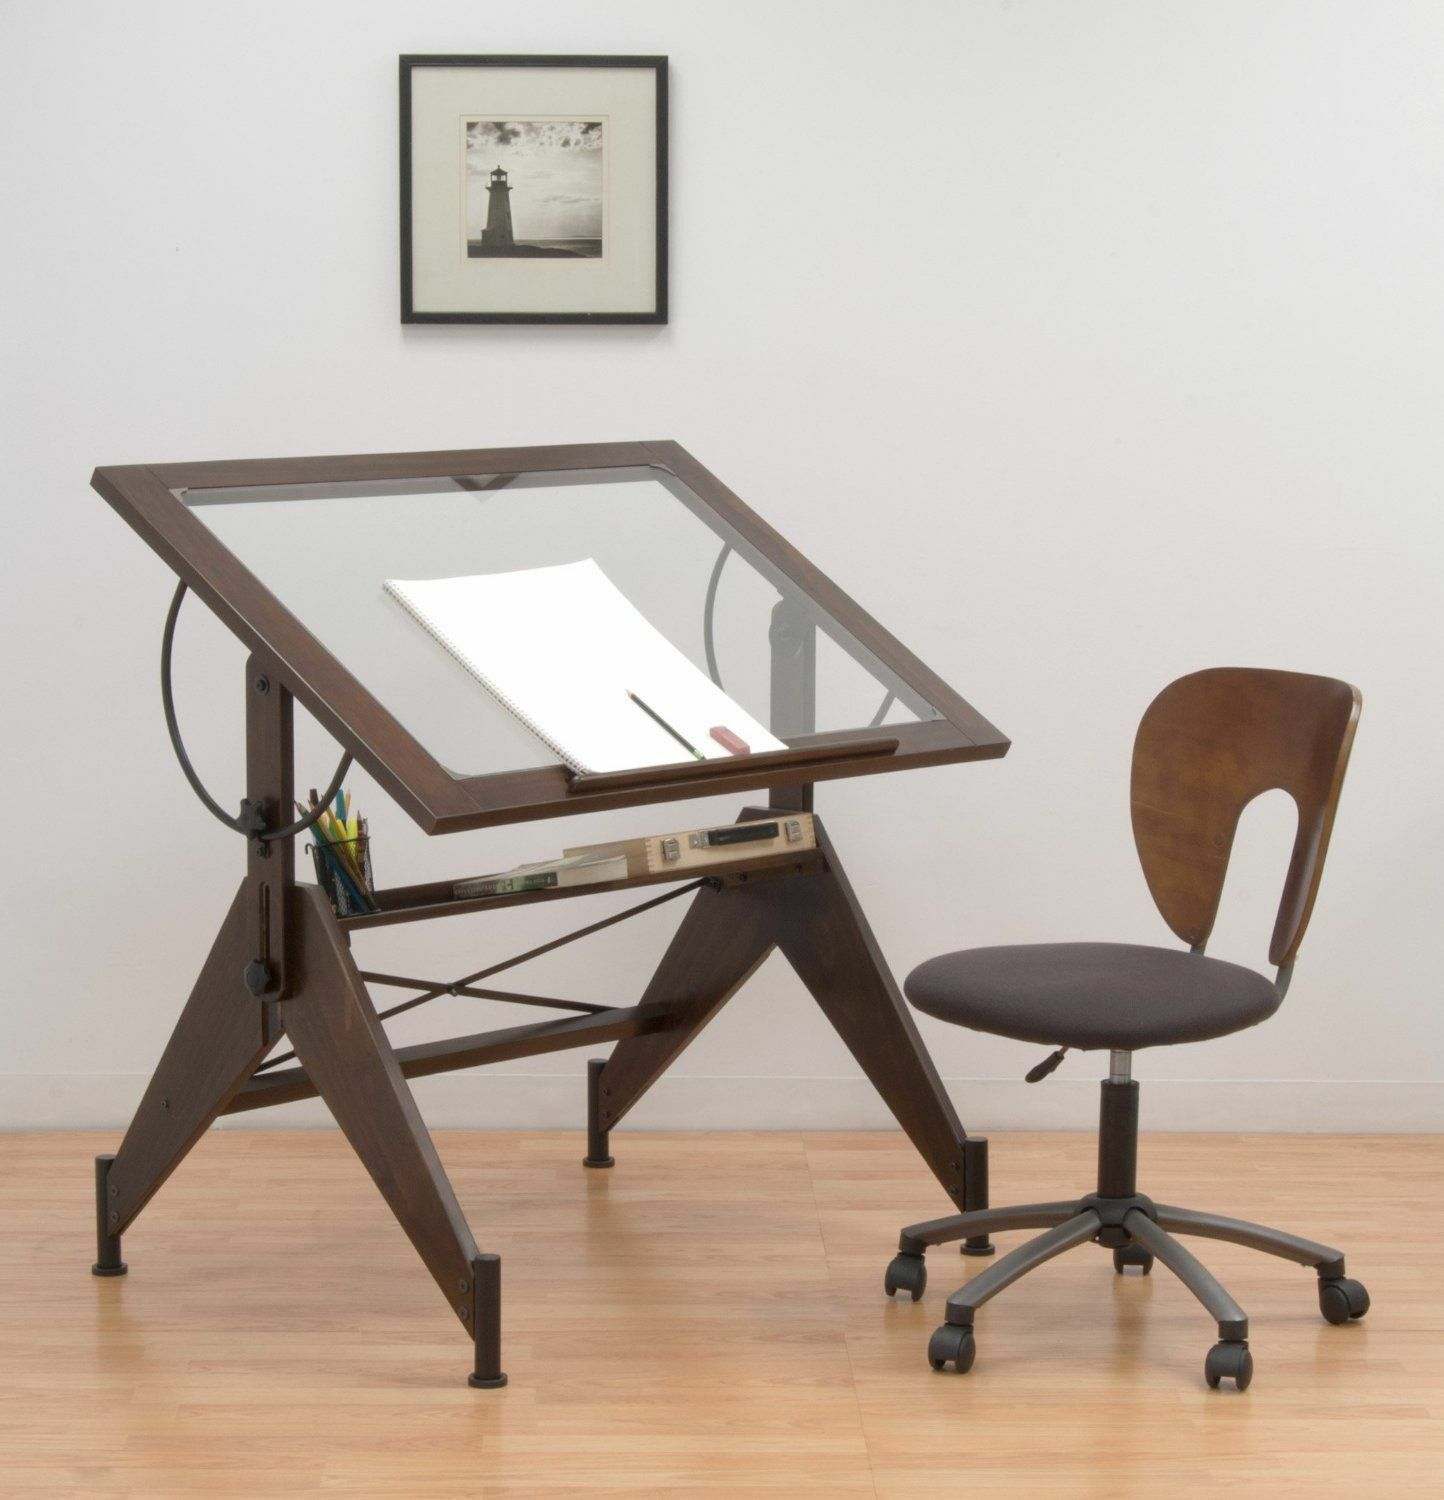 Drafting table dimensions - How To Build A Drafting Table